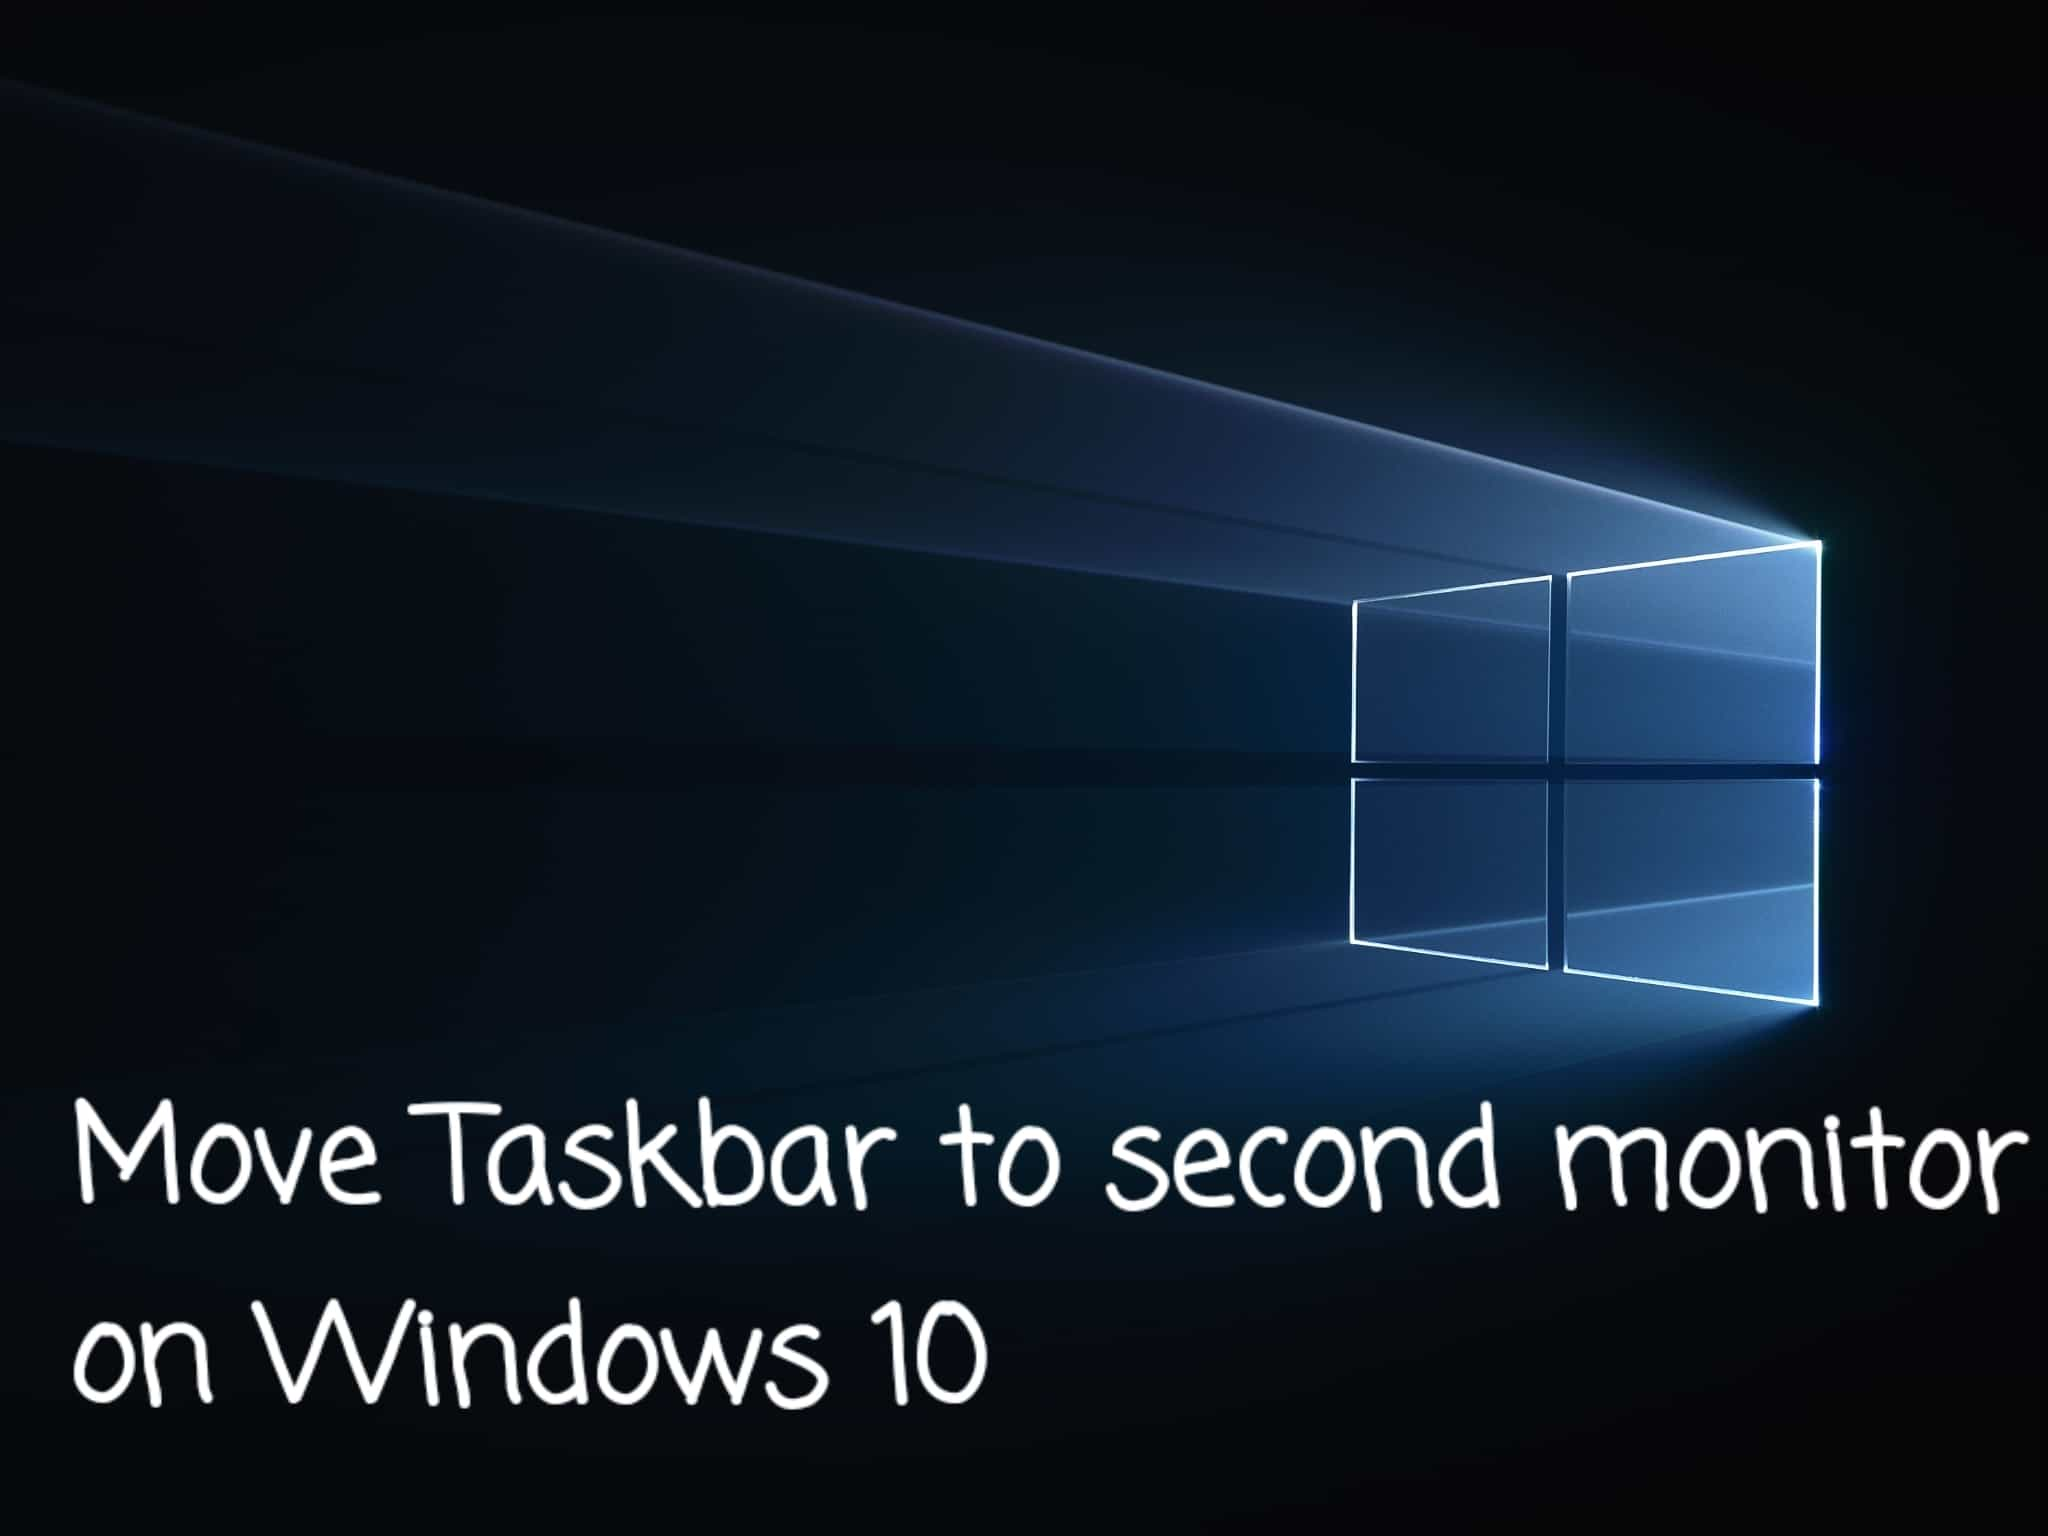 Move Taskbar to second monitor on Windows 10